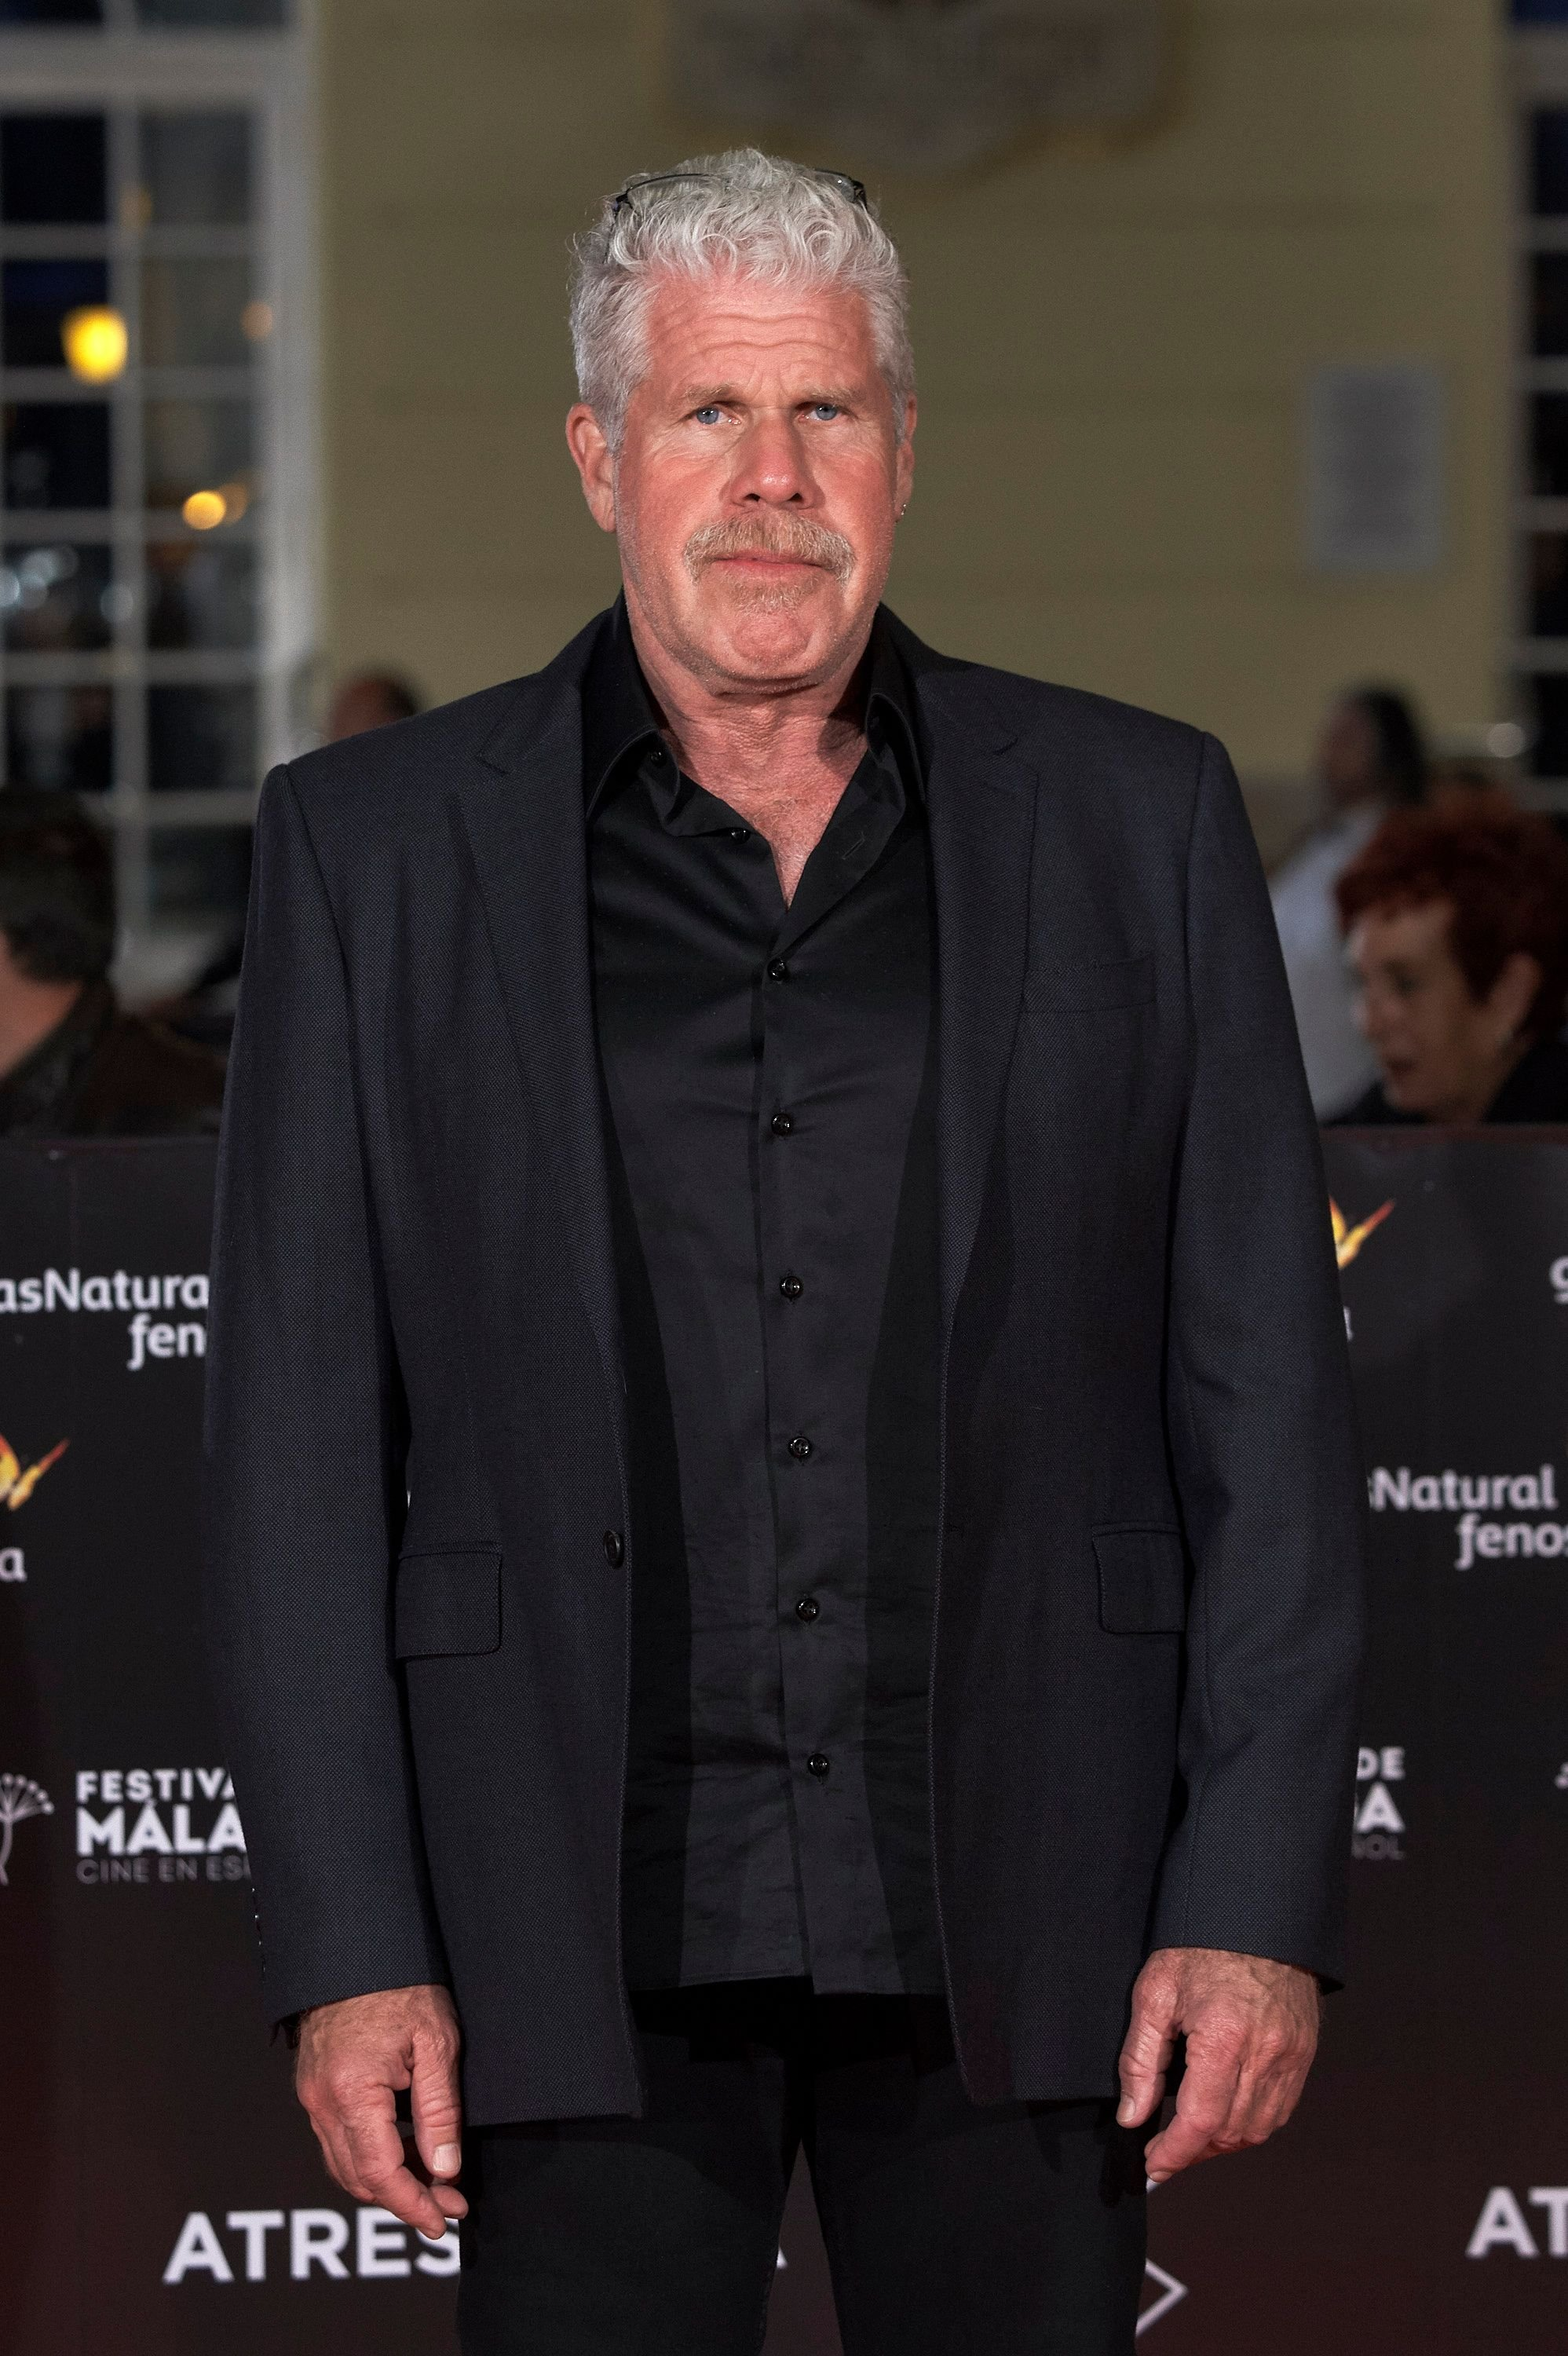 Ron Perlman attends 'No Dormiras' premiere at the Cervantes Theater on April 15, 2018 in Malaga, Spain. | Source: Getty Images